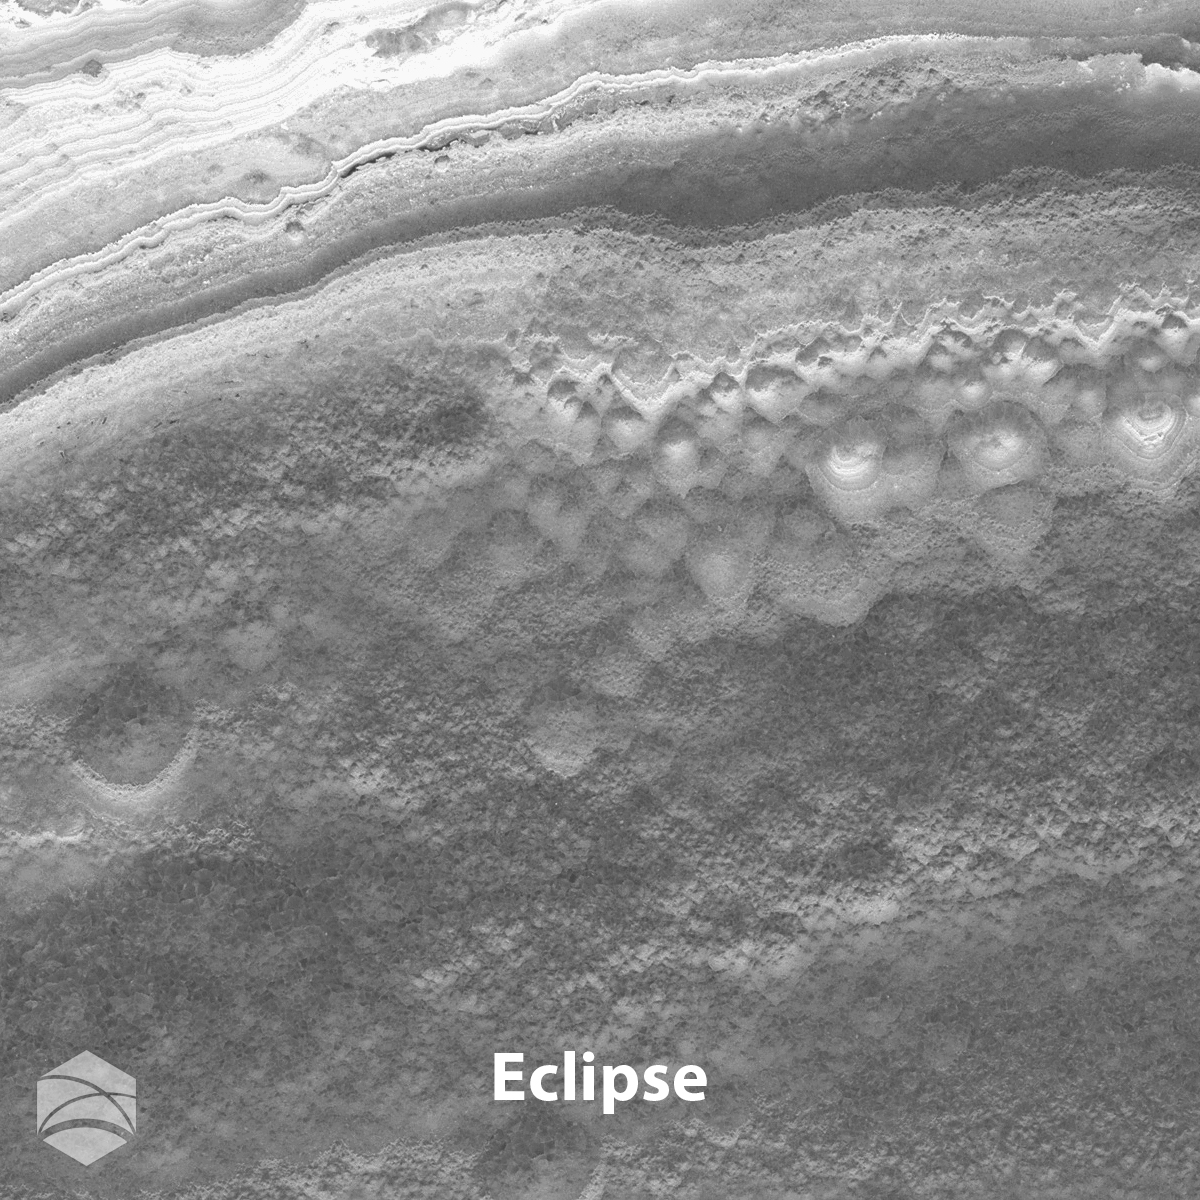 Eclipse_V2_12x12.jpg